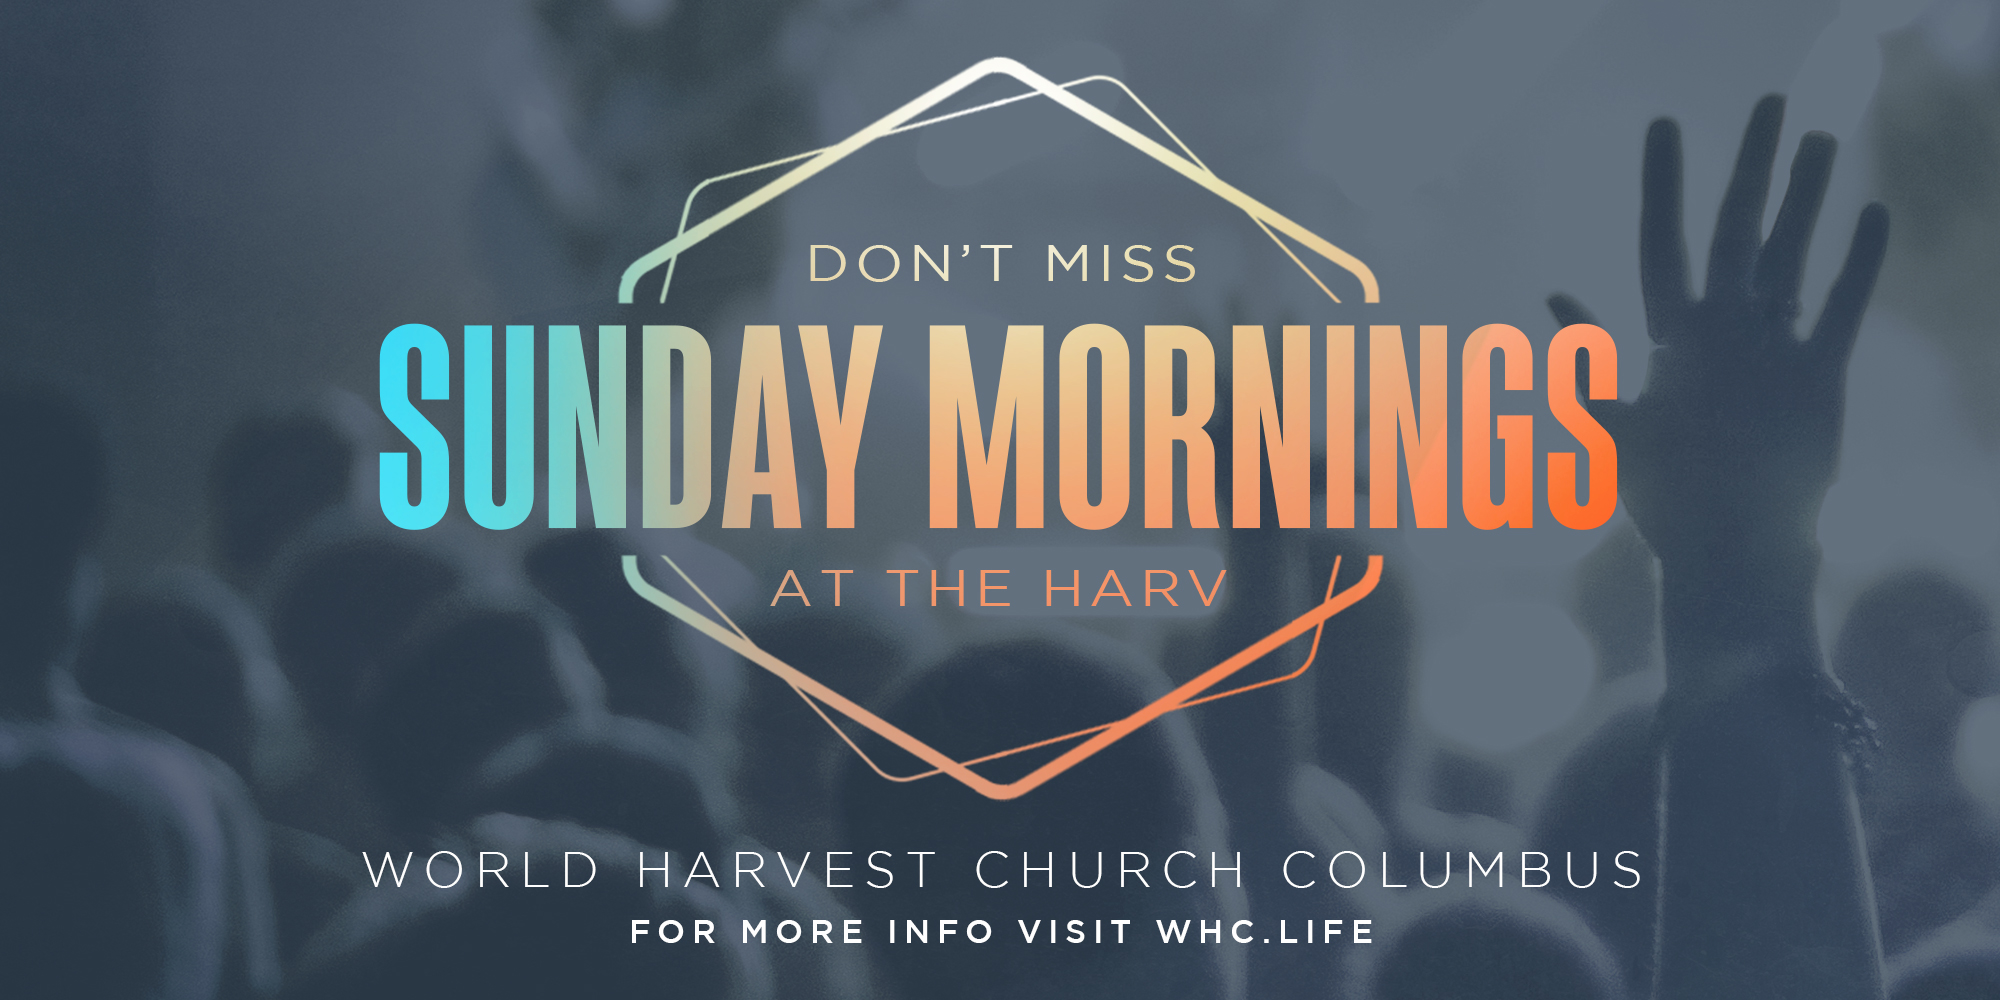 Don't Miss Sunday Mornings at the Harv World Harvest Church Columbus for More Info VIsit WHC.LIFE